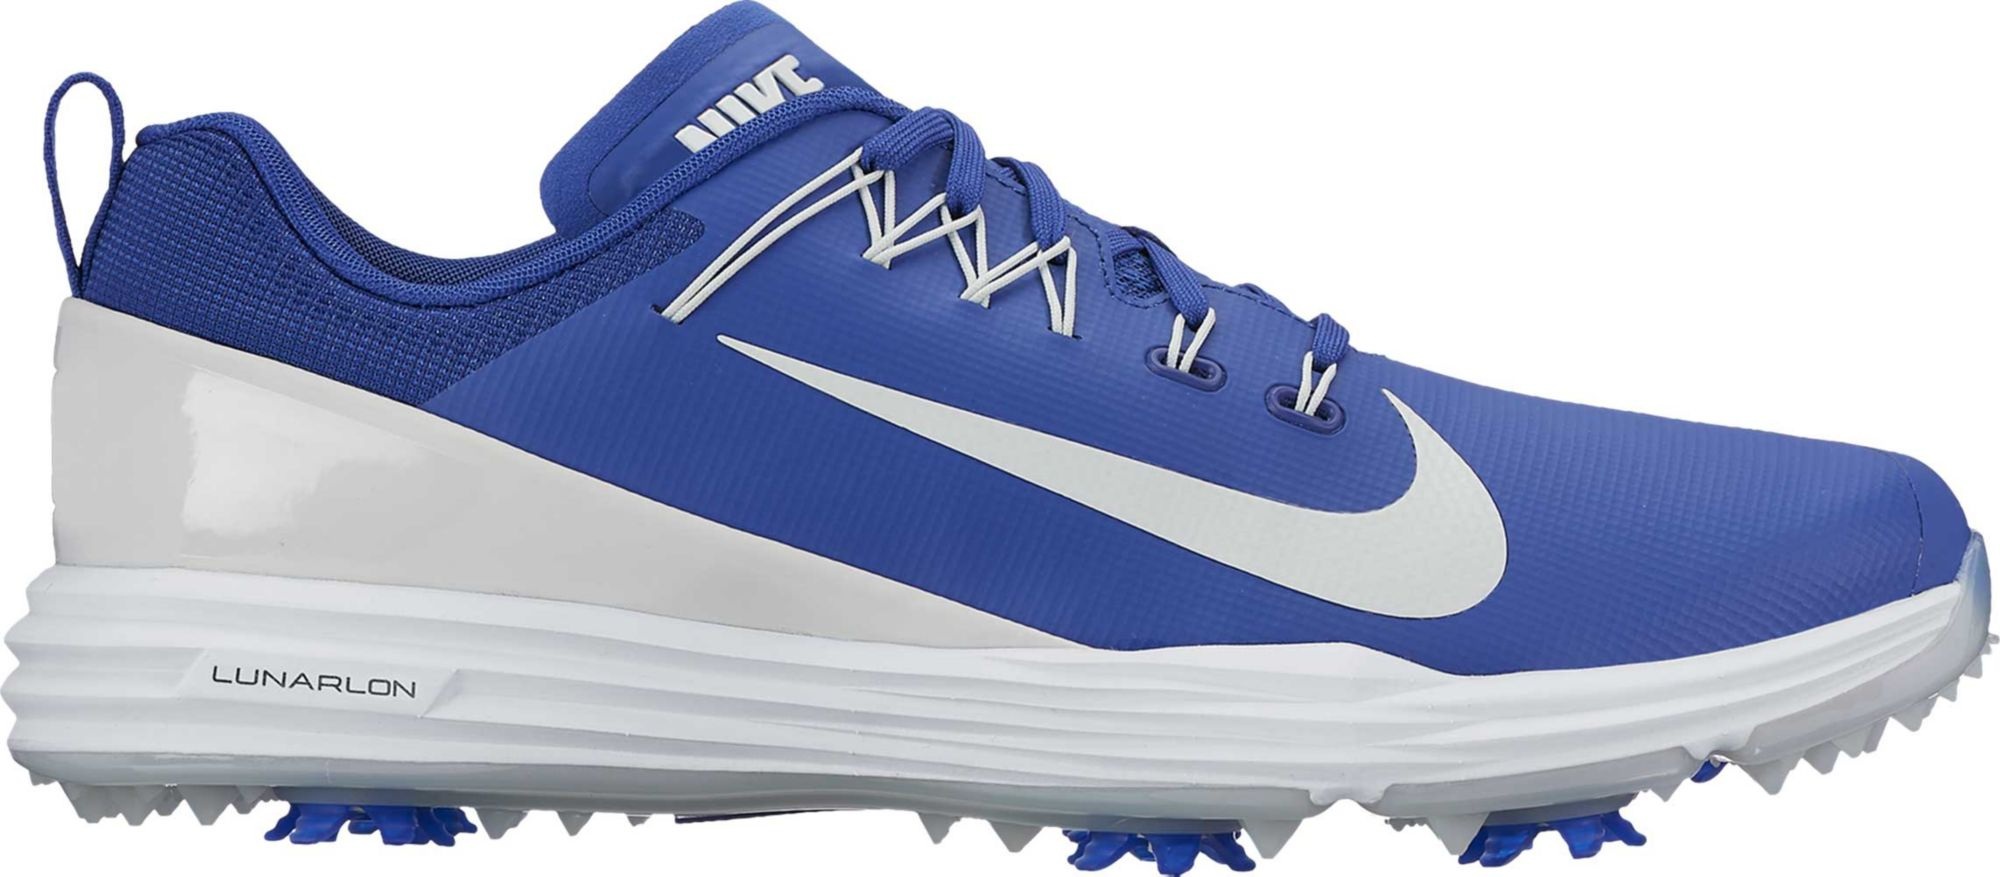 nike lunar golf shoes blue